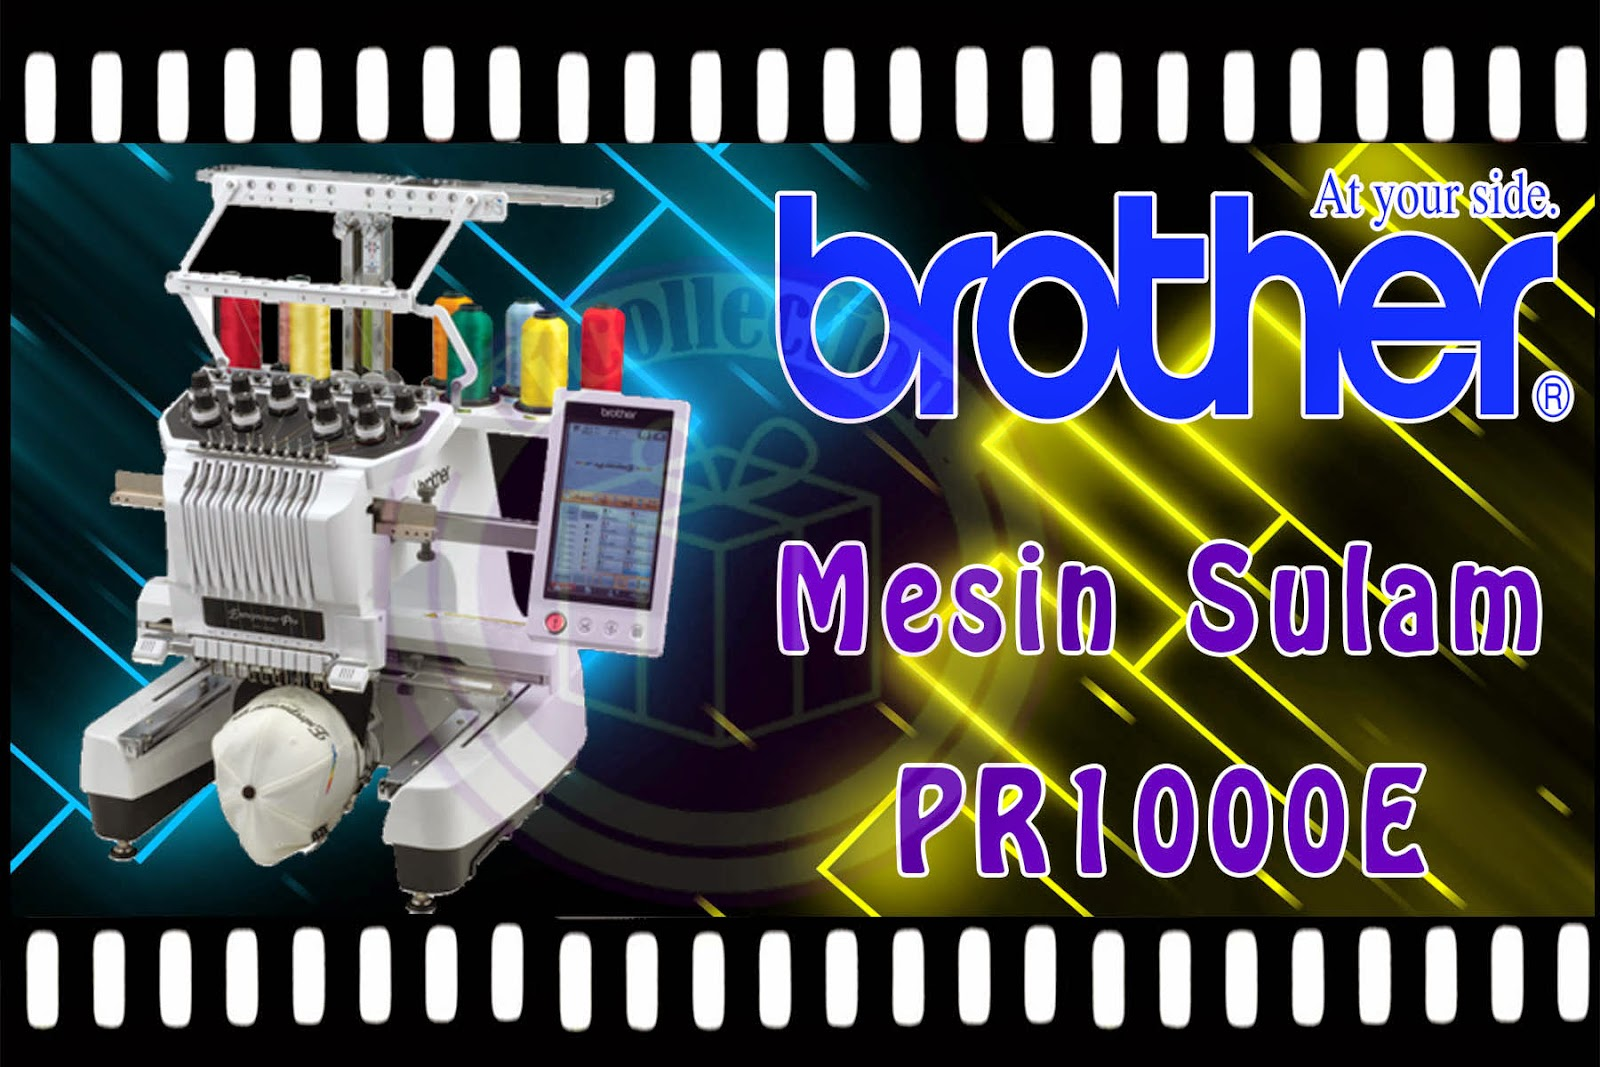 http://d1embroidery.blogspot.com/search/label/Mesin%20Sulam%20PR1000e